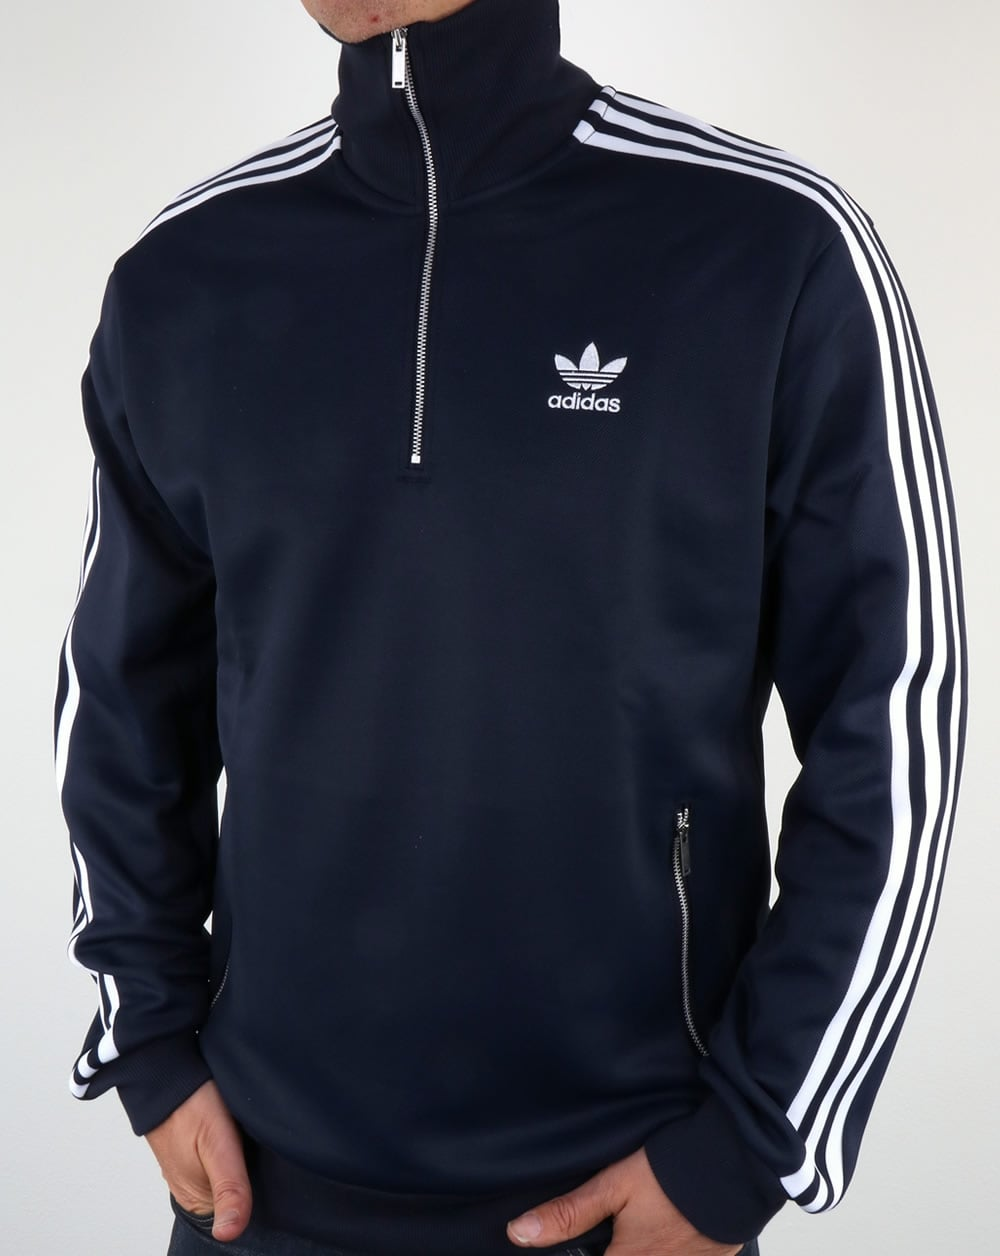 Adidas Originals Half Zip Track Top Navy Blue Quarter